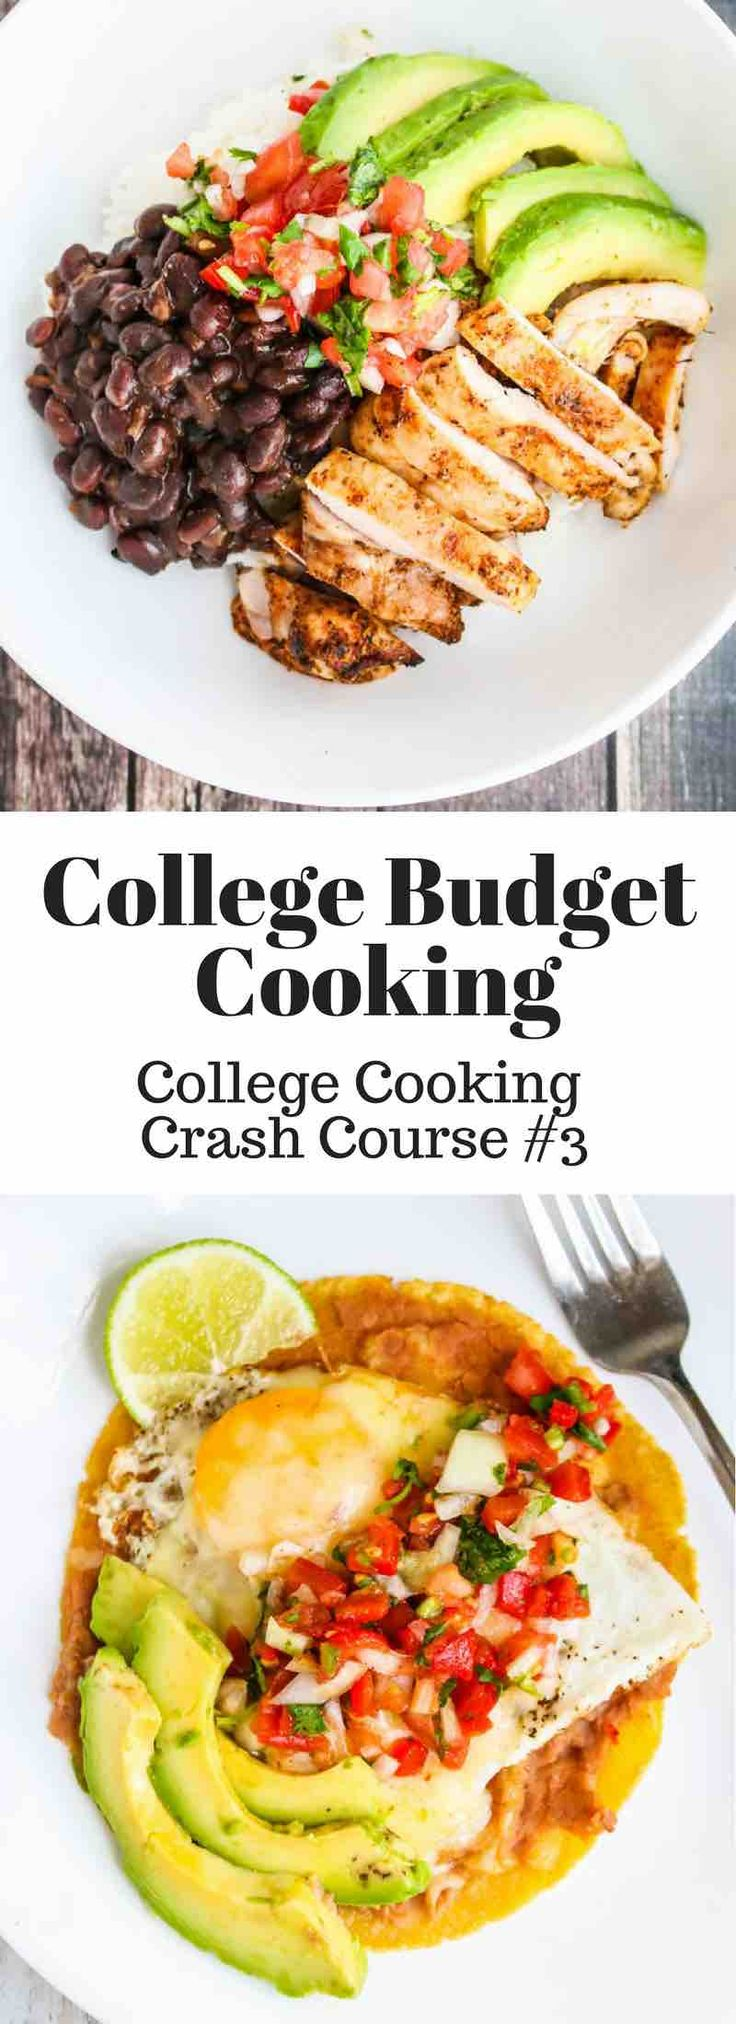 College Cooking Crash Course. Learn how to cook healthy on a low budget of $6/day, making huevos rancheros, quesadillas and burrito bowls repurposing ingredients.